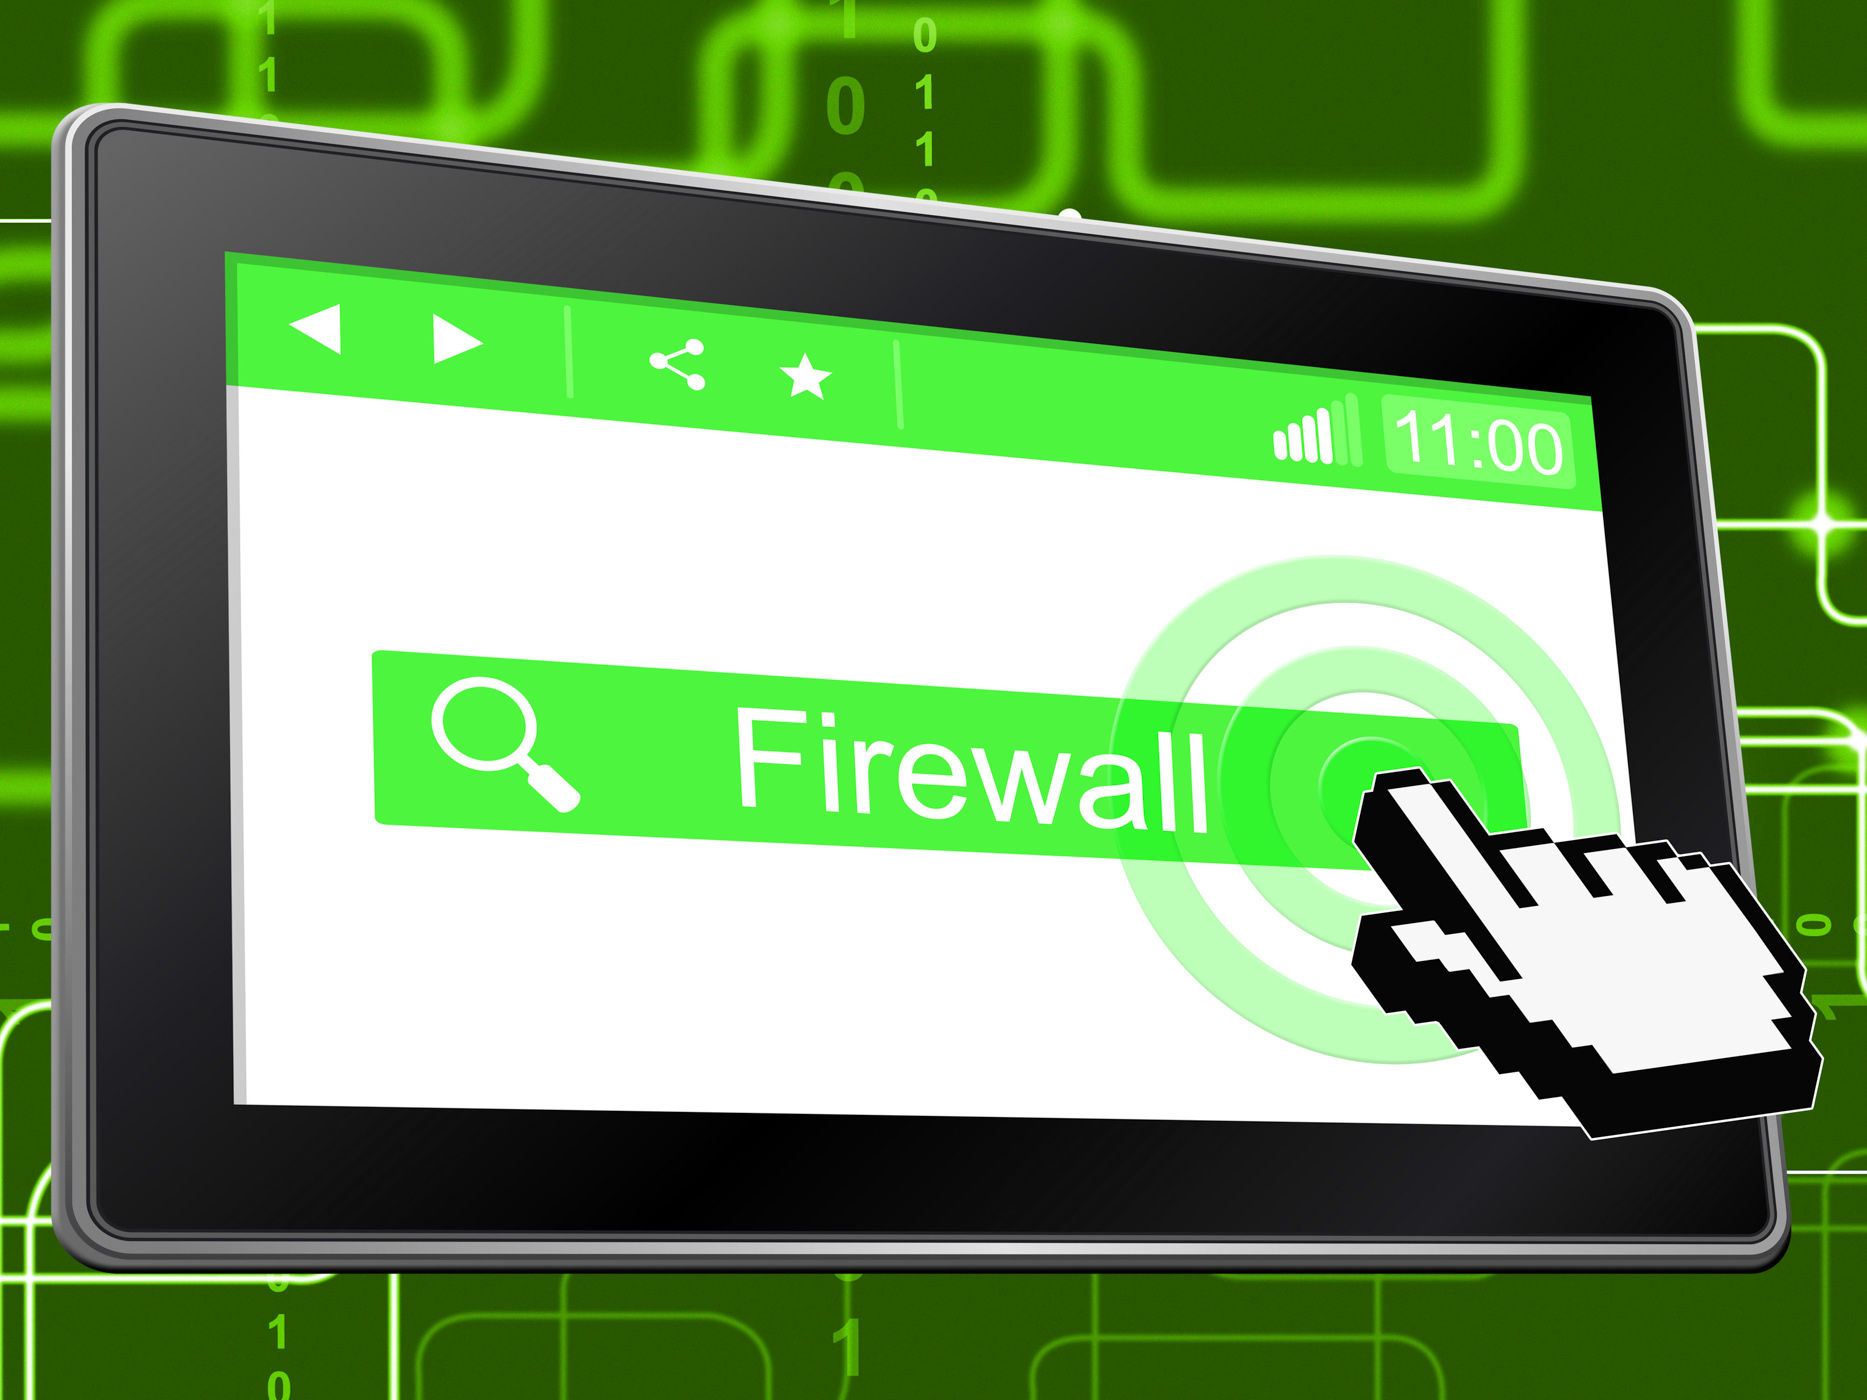 Online firewall represents world wide web and defence photo